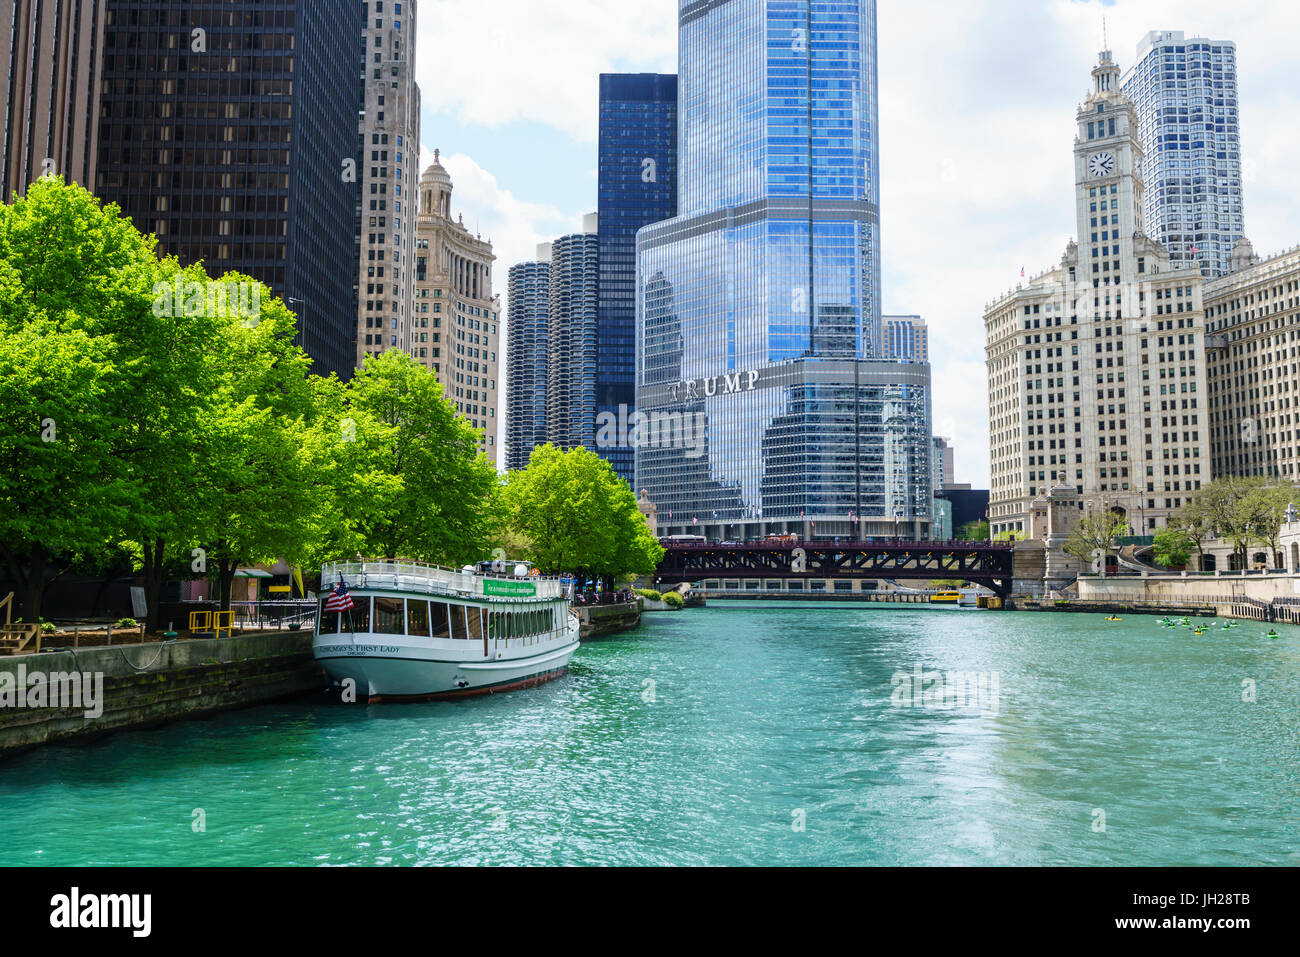 Chicago River with Trump Tower and Wrigley Building, Chicago, Illinois, United States of America, North America - Stock Image